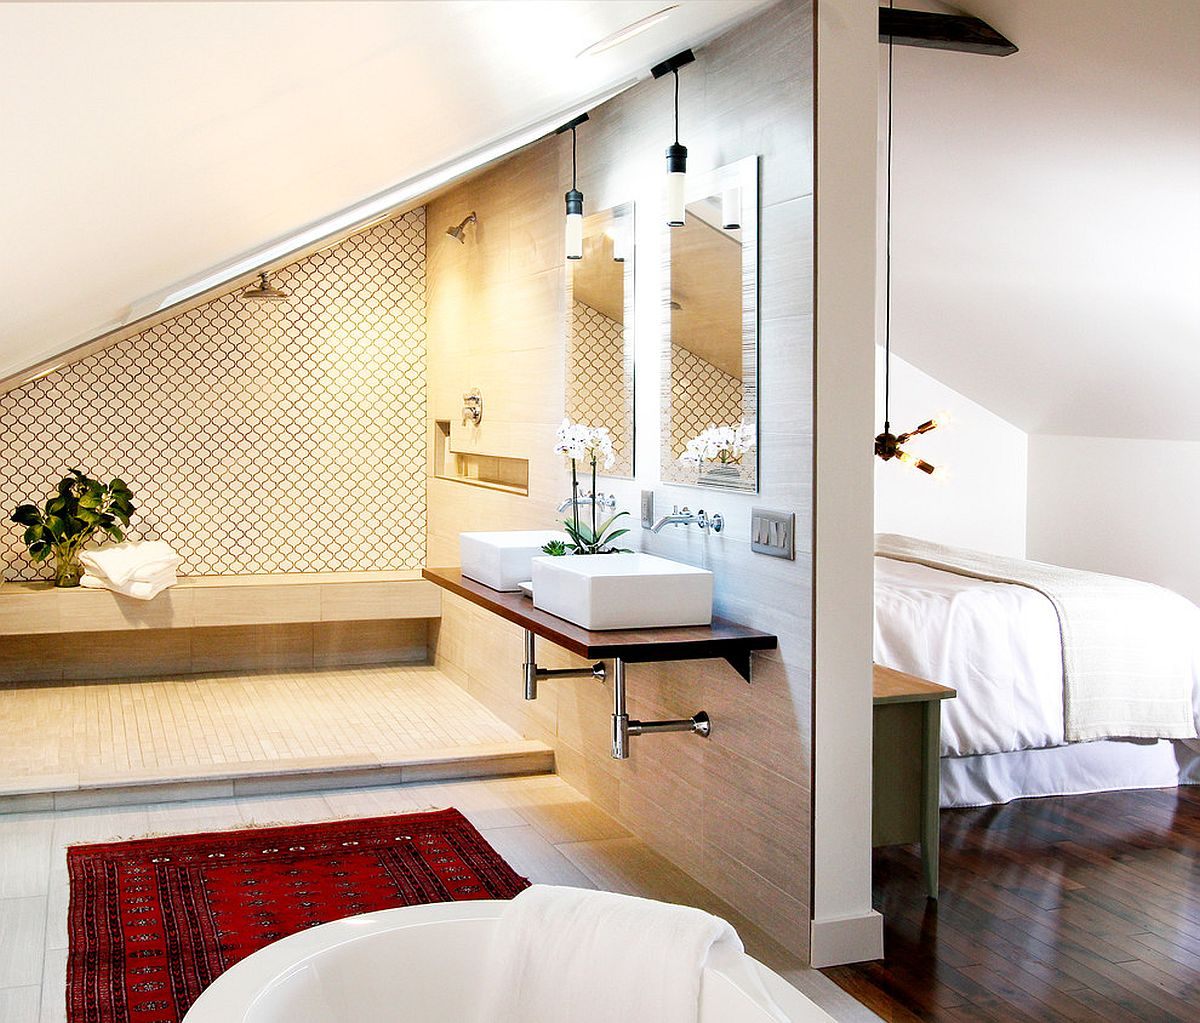 Modern-master-suite-in-the-attic-brings-home-spa-styled-luxury-57812